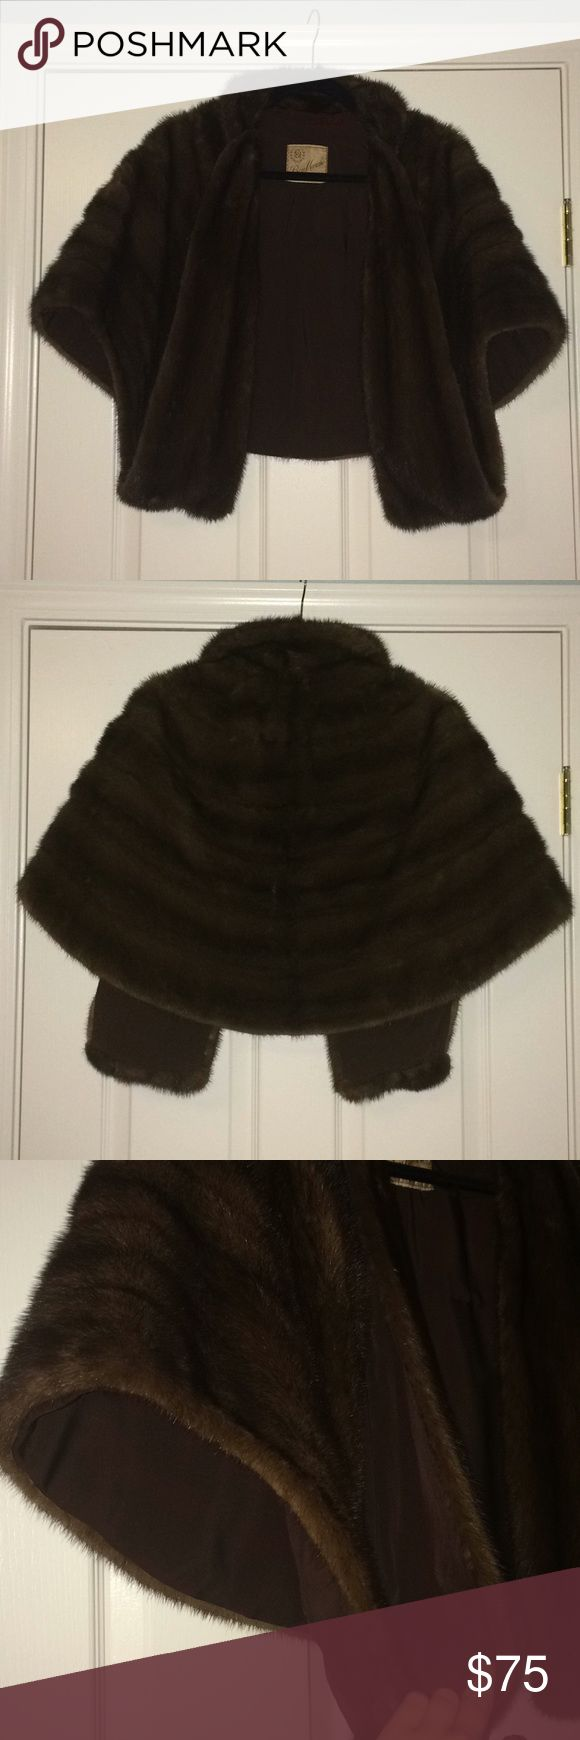 Vintage 1950s Bon Marche Honey Brown MINK Wrap Mint condition. Mink fur makes this wrap very soft.   This wrap/shrug/cape has a collar and inseams that drapes down in the center and create a hammock-like pocket for your hands. Bon Marche Jackets & Coats Capes